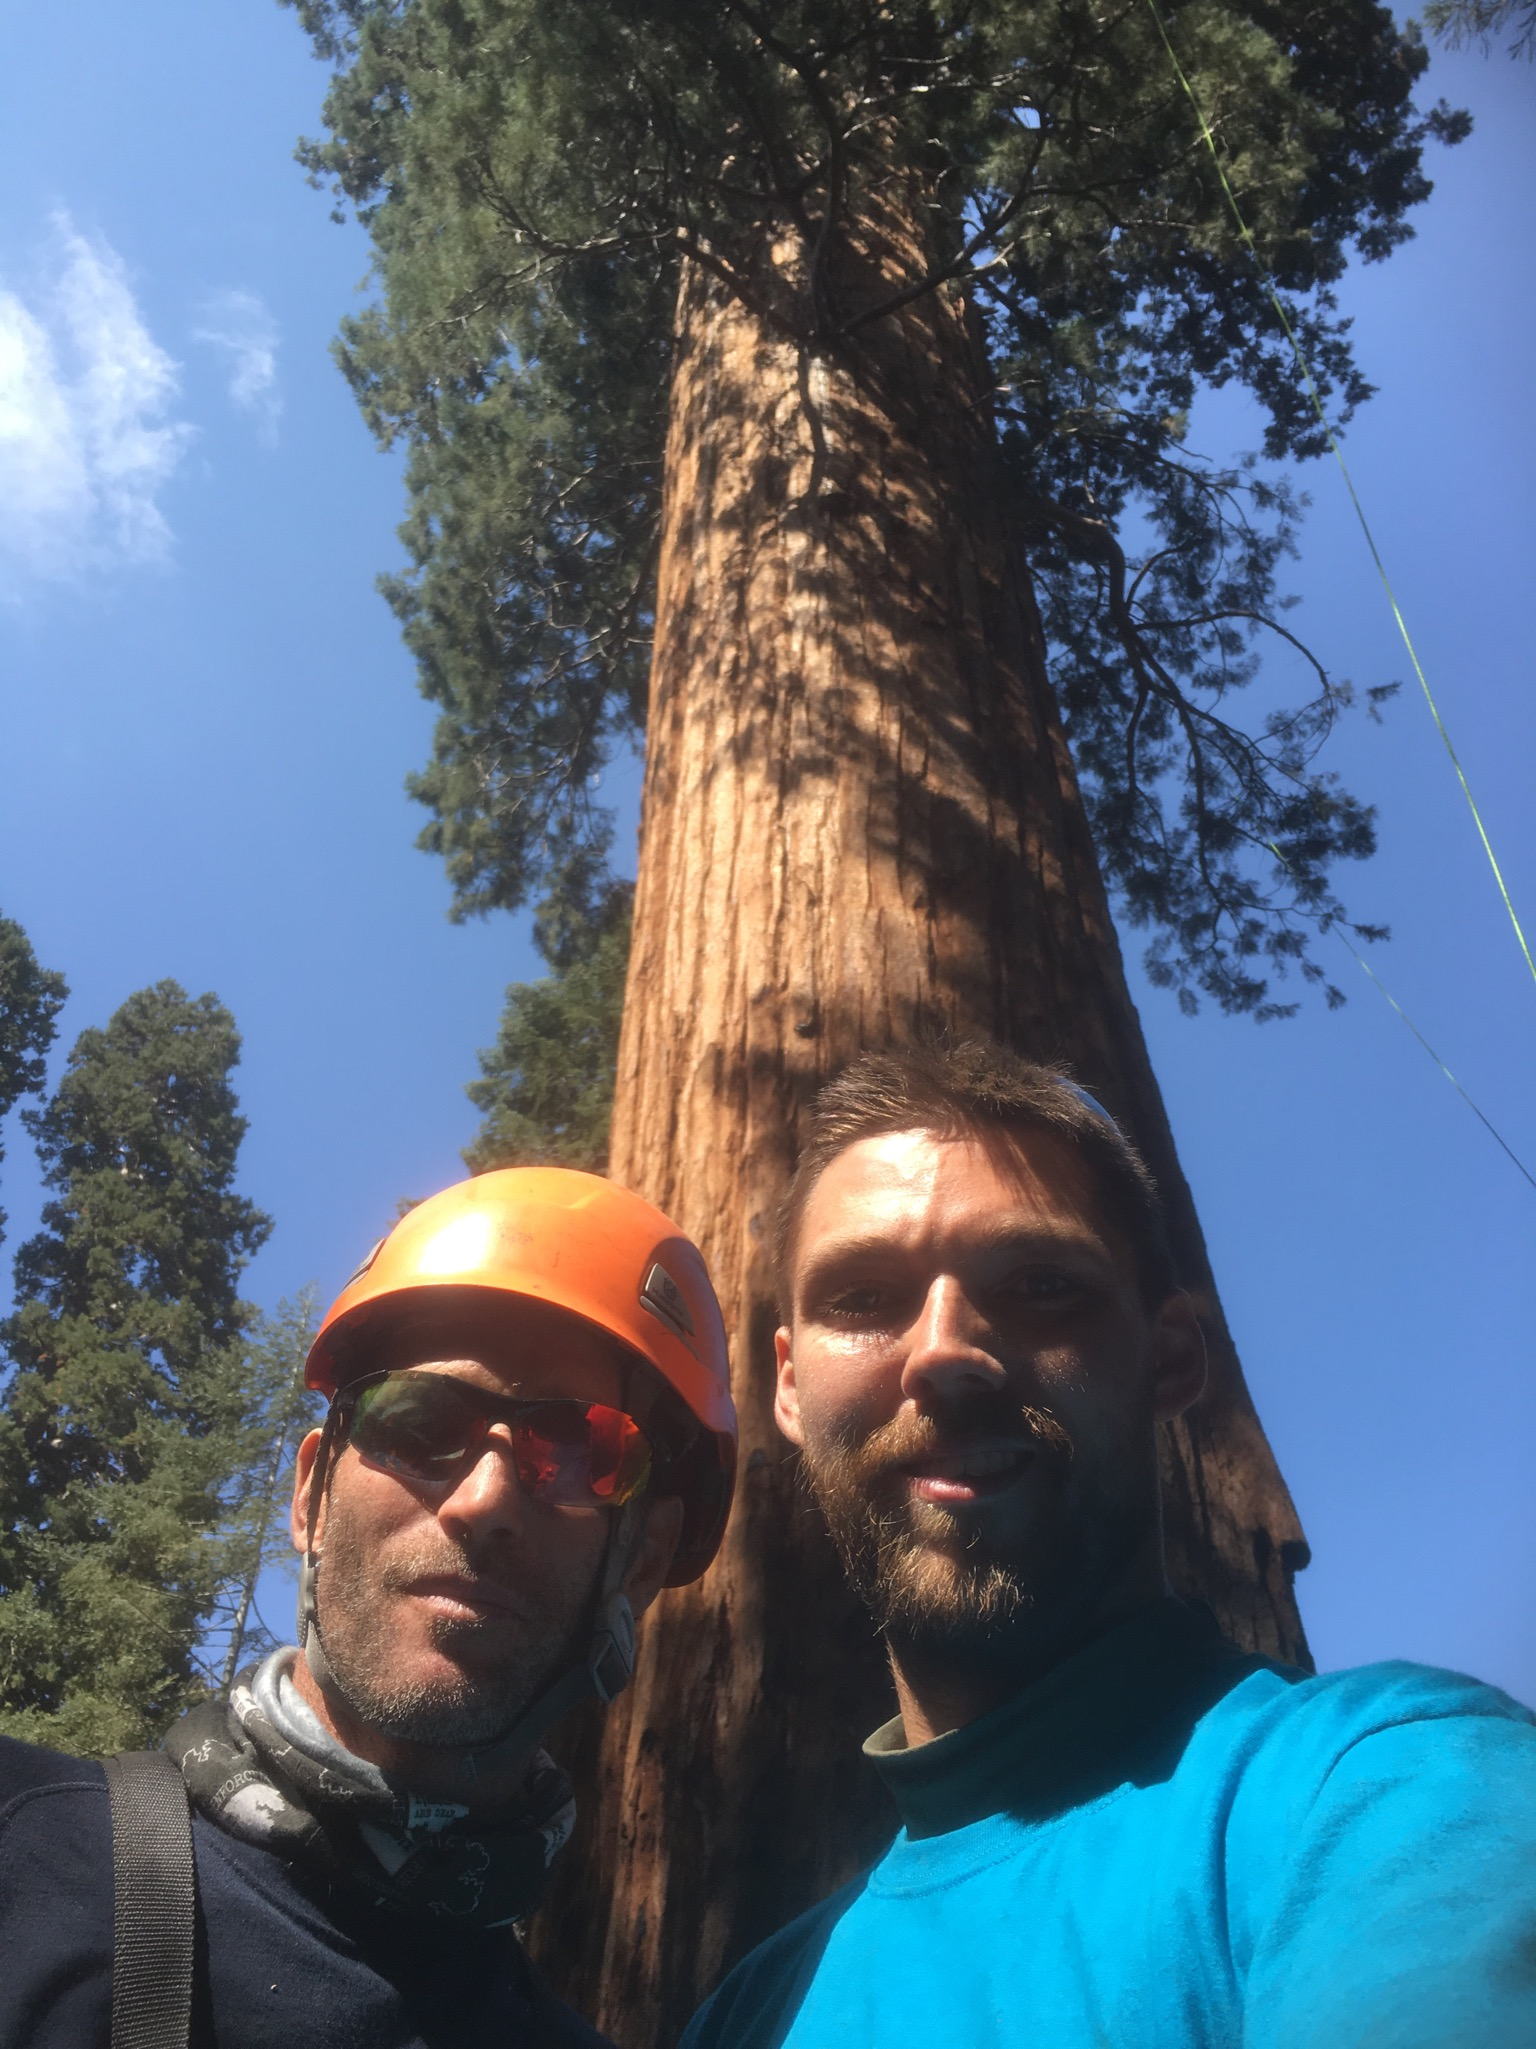 4. Team members Kev Bingham and Nick Markley scaled the massive sequoia behind them to collect both branch tip material and cones. These men knew they were risking their lives to perform these delicate operations at incredible heights. Every climber handled their duties like true champions.